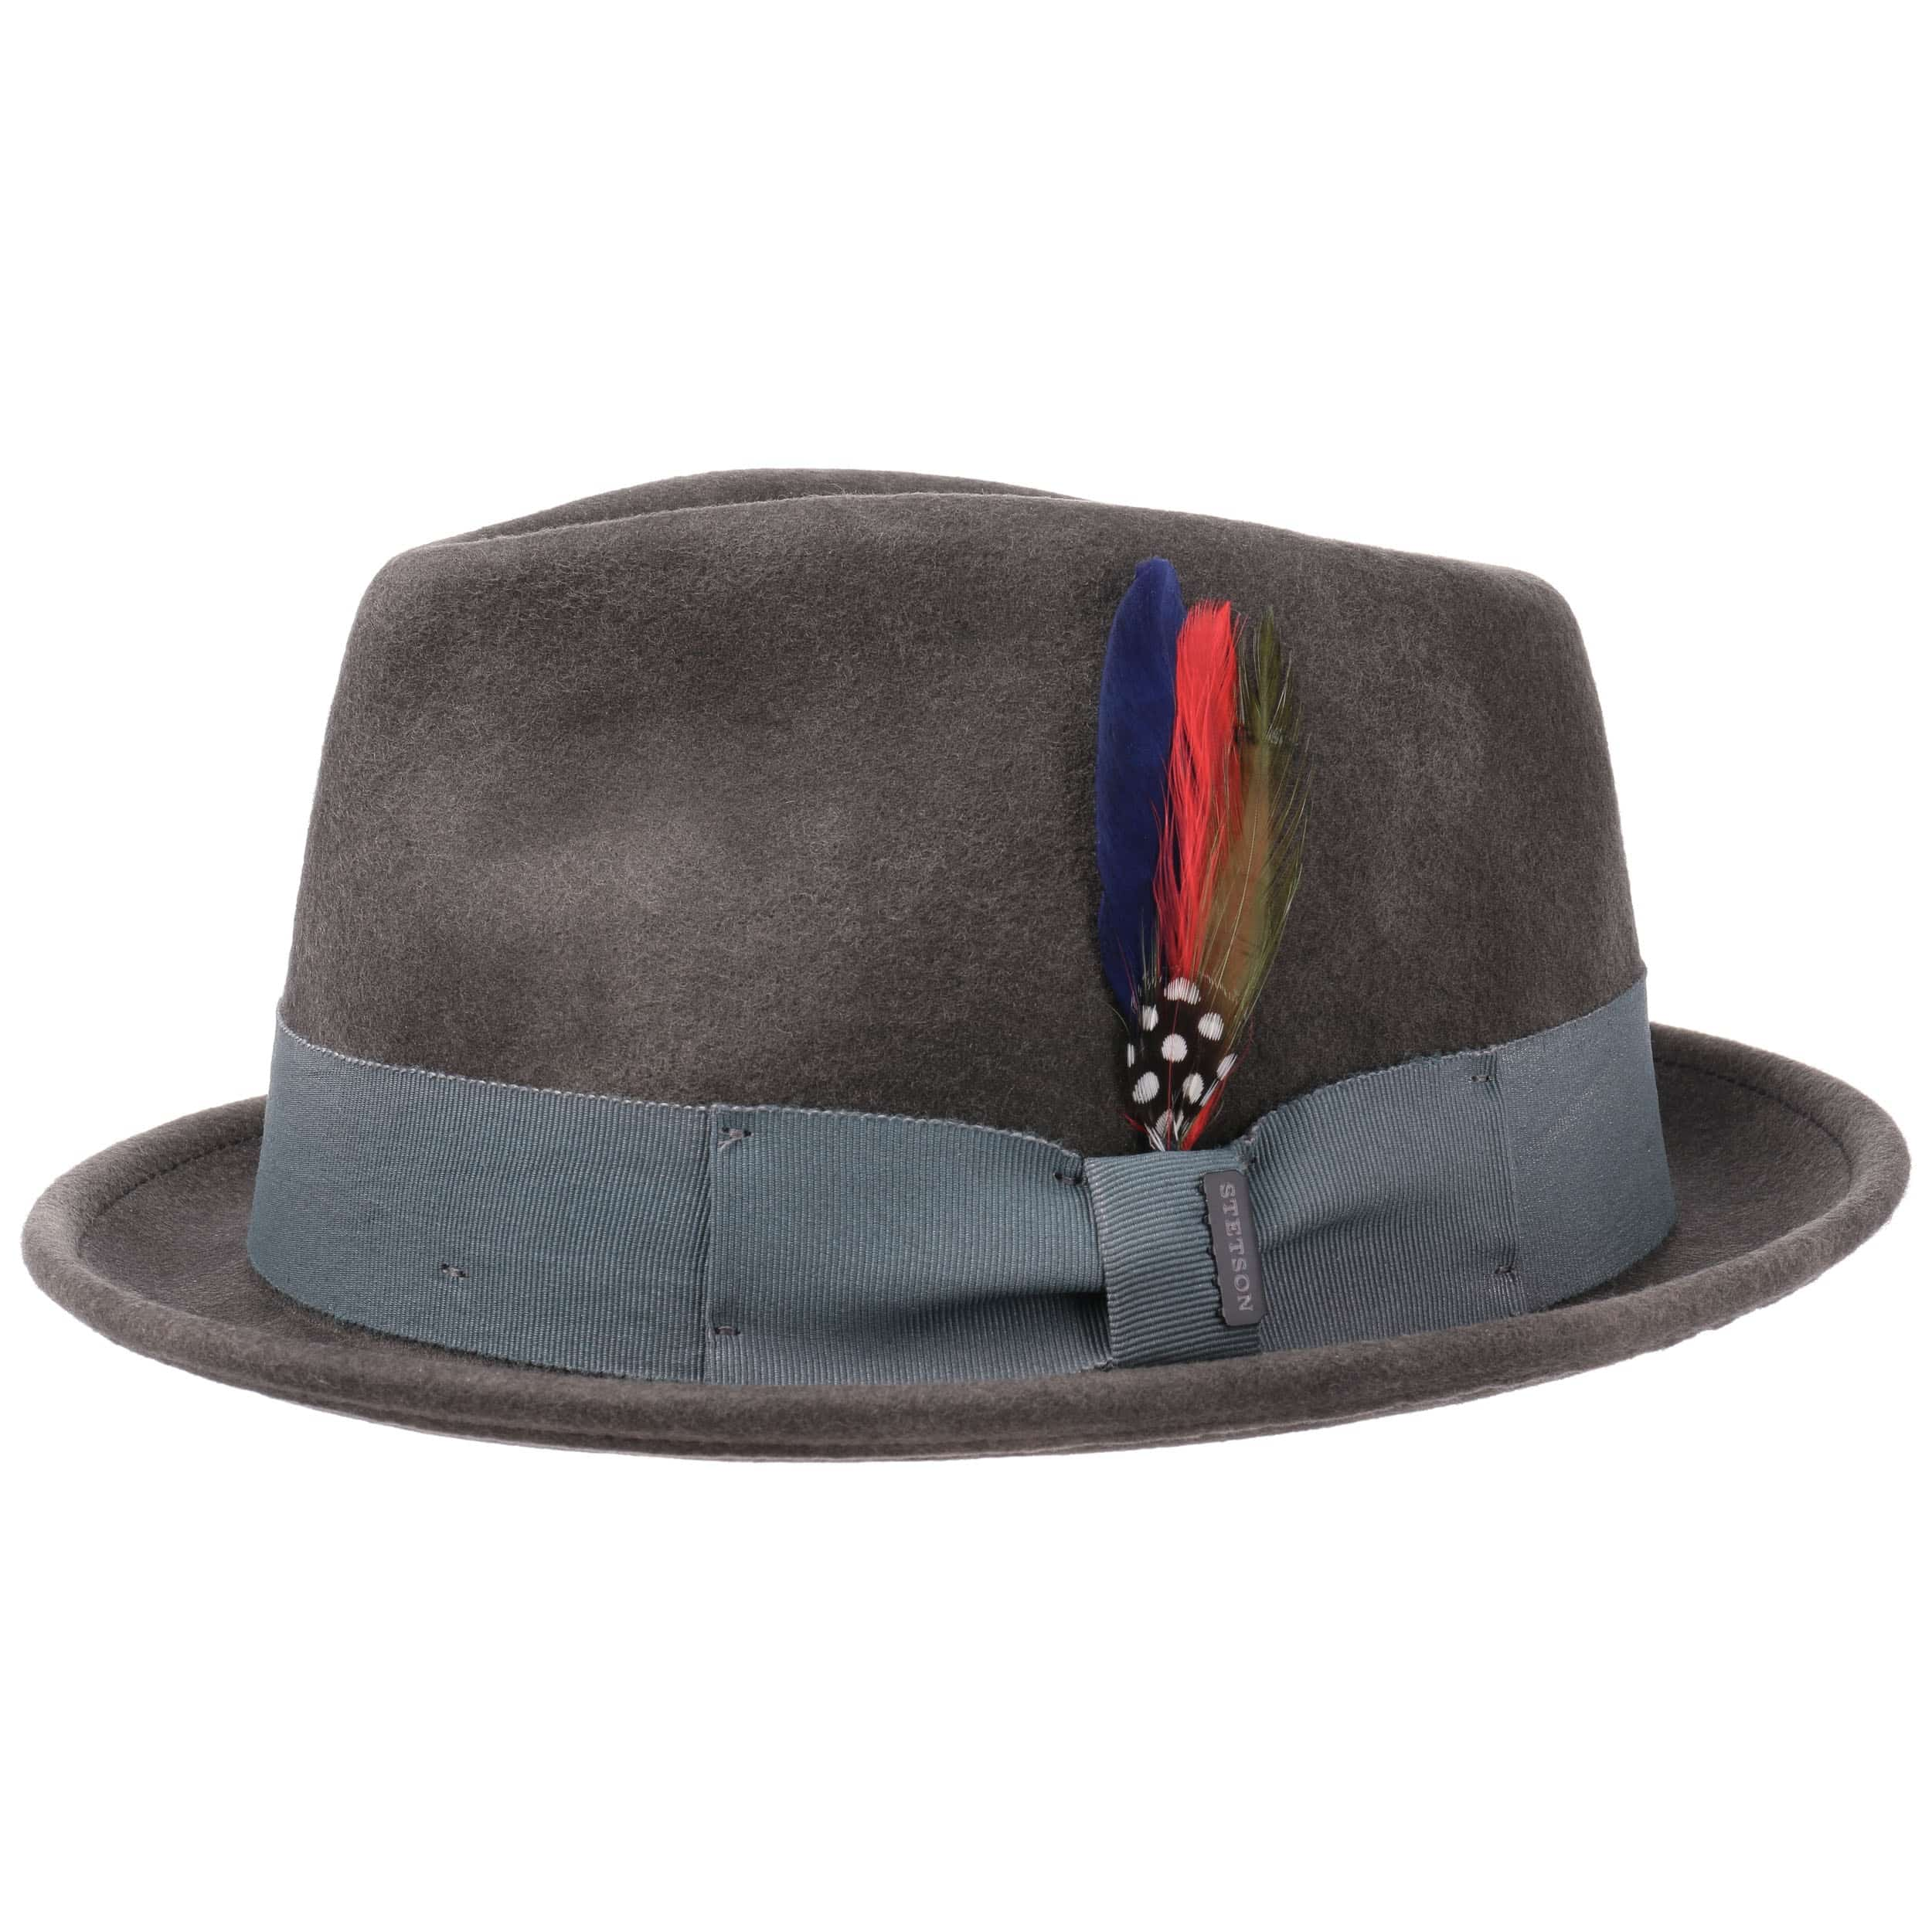 907462d809d ... Washed Look Fedora Felt Hat by Stetson - grey 5